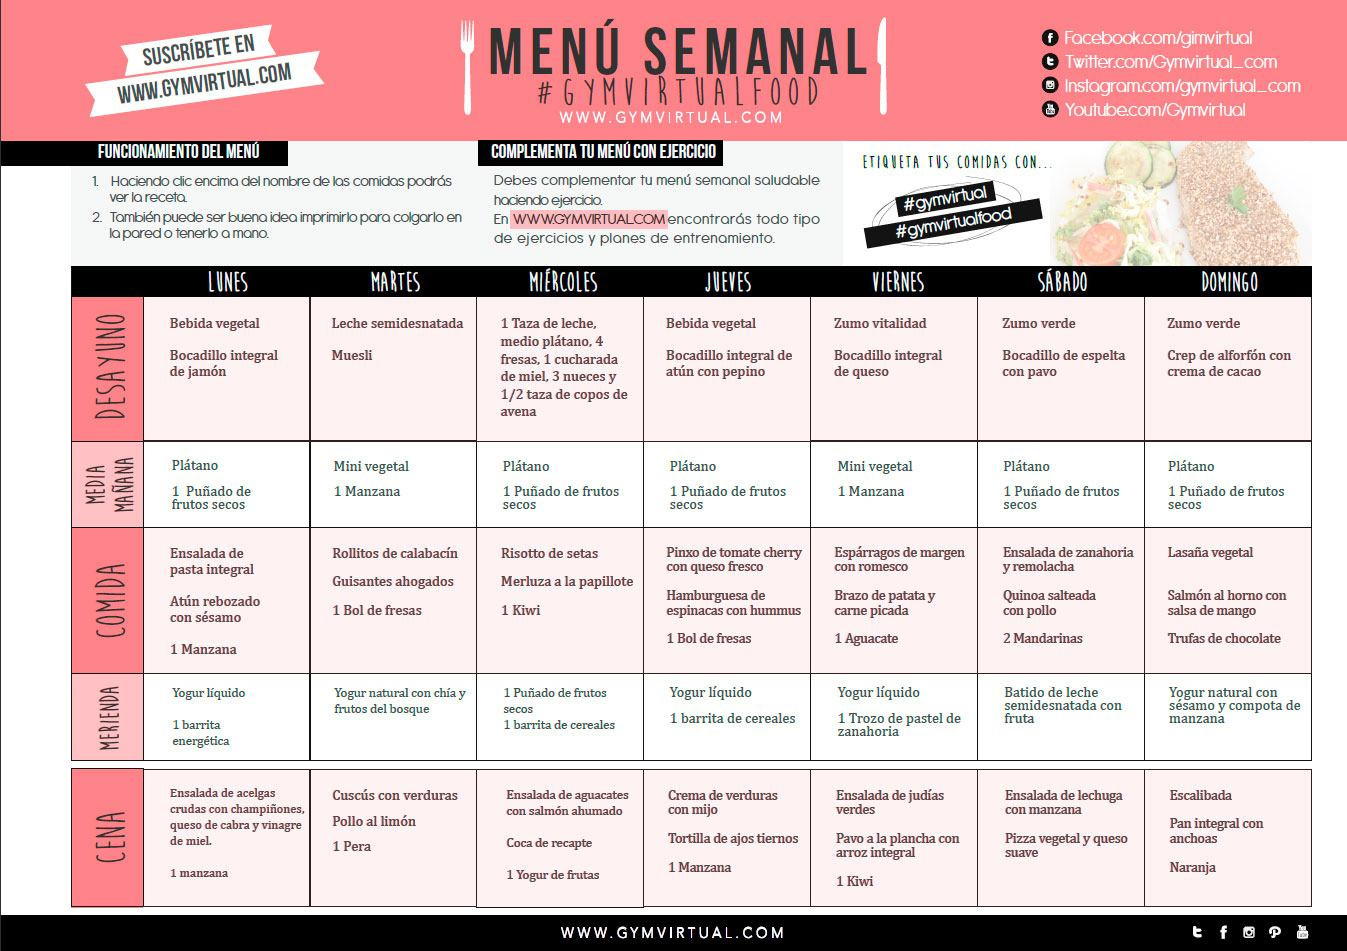 Men semanal de recetas saludables gym virtual for Menu vegano para principiantes